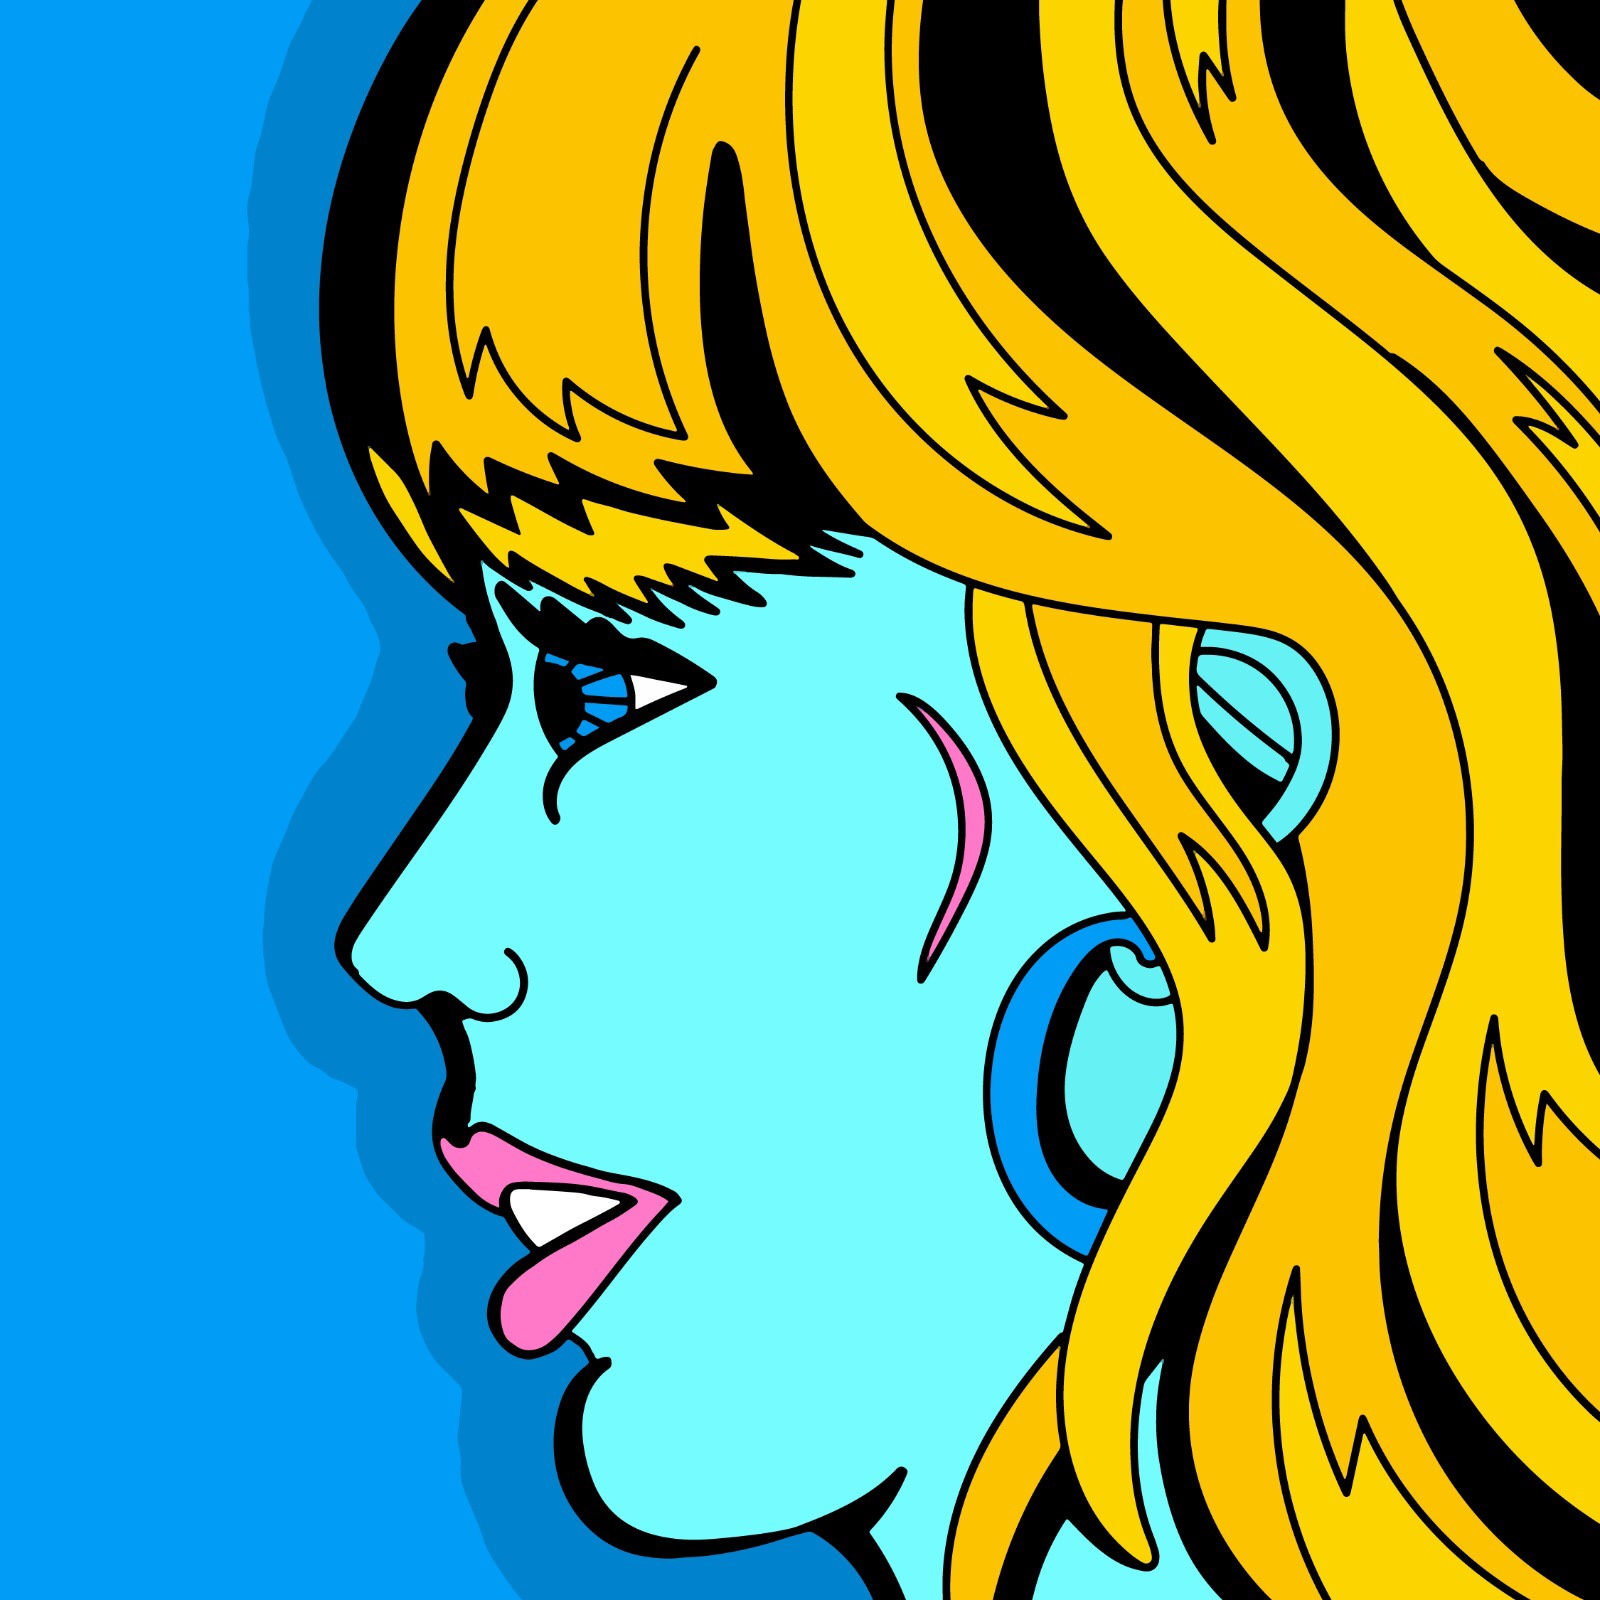 Taylor Swift illustration done by Mina Tocalini of 360 MAGAZINE.